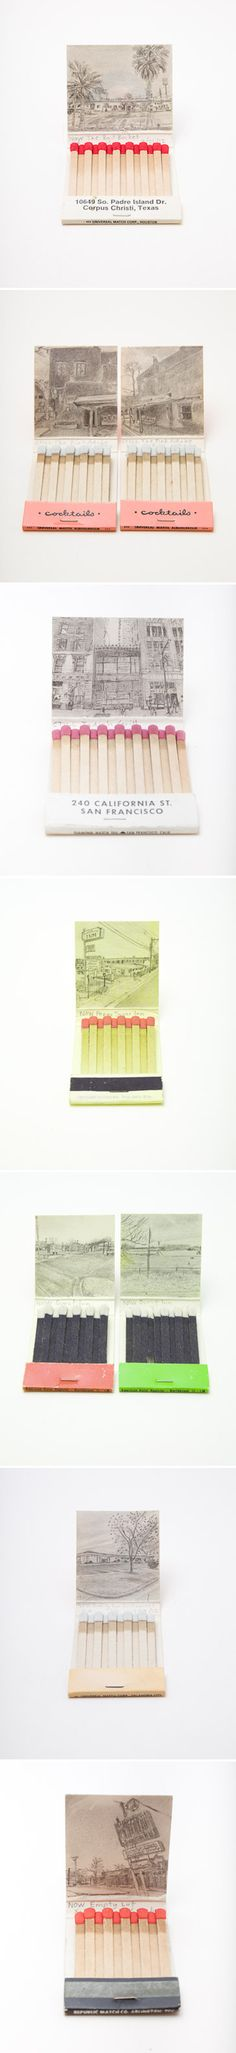 Matchbook drawings by Krista Charles { via @sfgirlbybay }